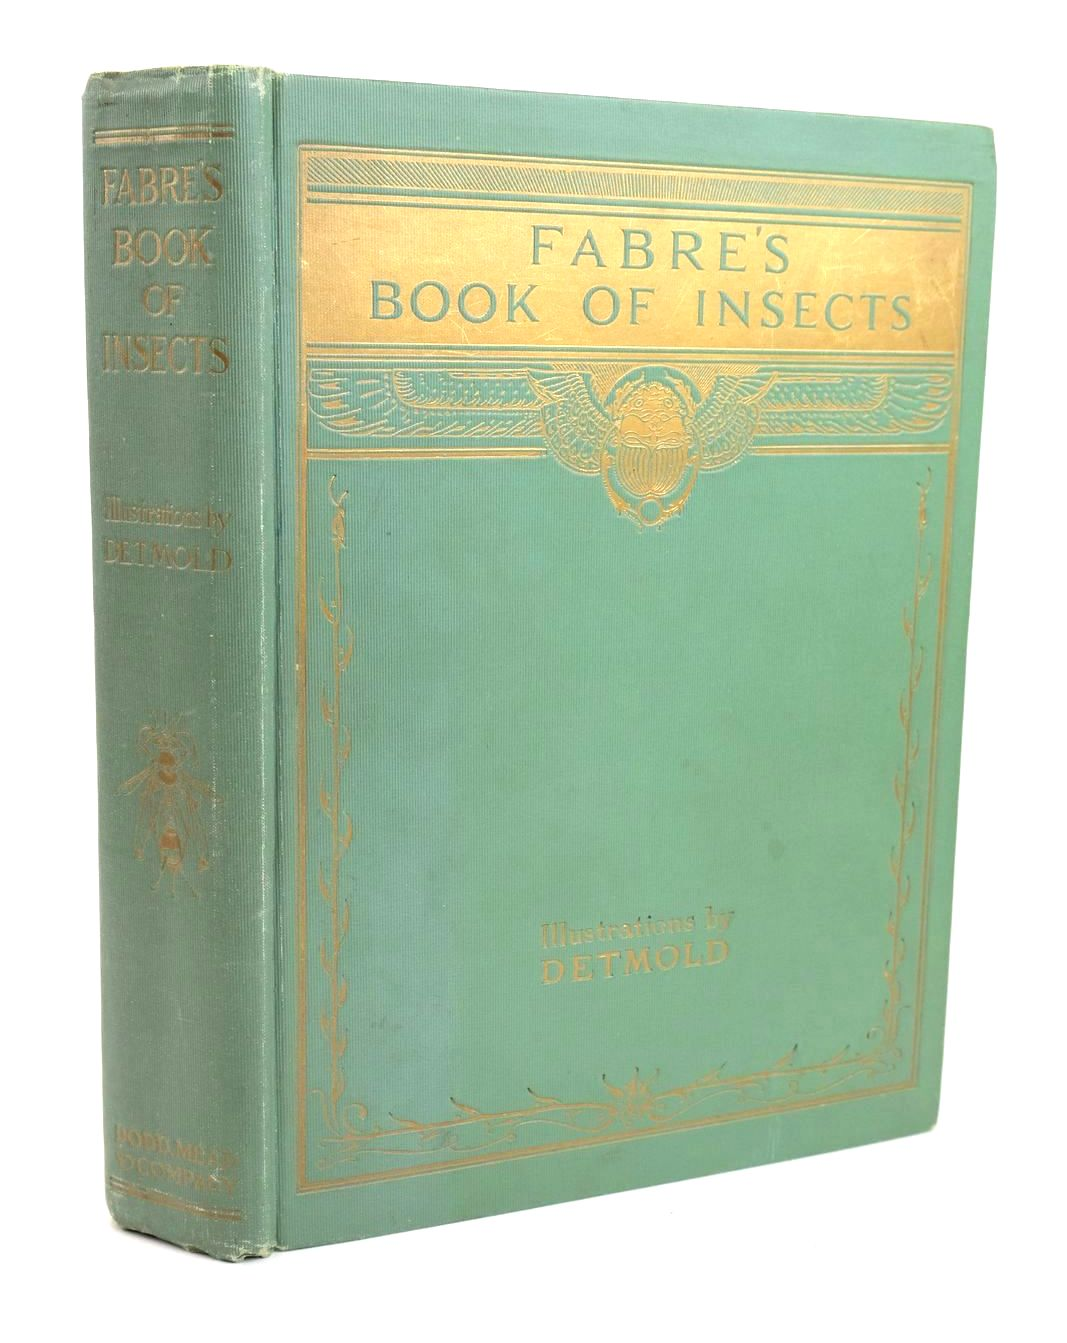 Photo of FABRE'S BOOK OF INSECTS